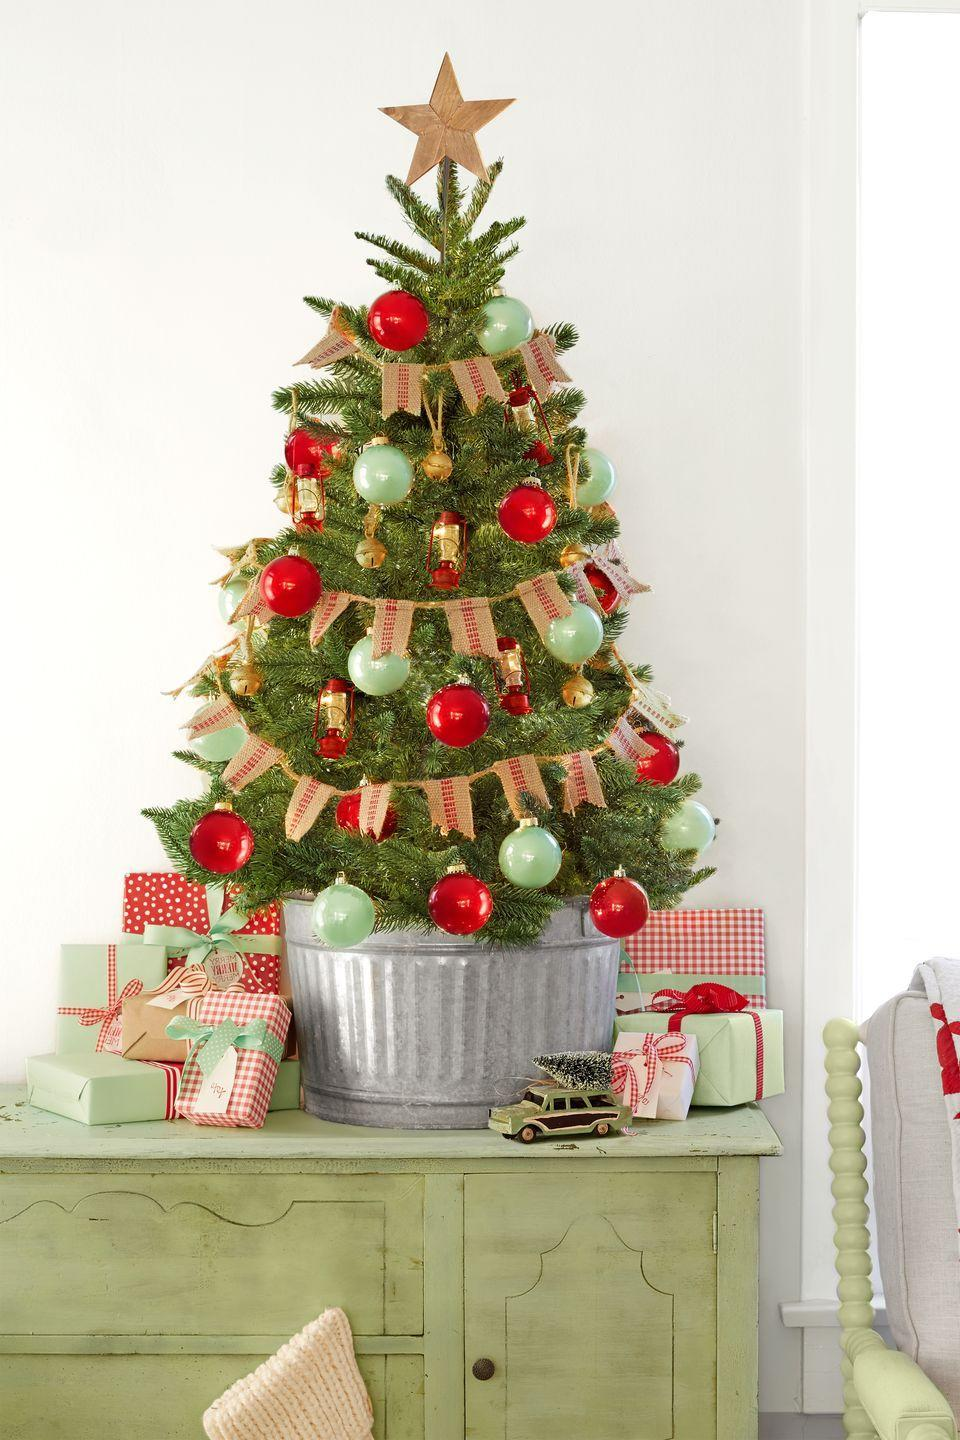 "<p>This mini Christmas tree brings major country charm thanks to its burlap banner, galvanized bucket, and lantern ornaments.</p><p><a class=""link rapid-noclick-resp"" href=""https://go.redirectingat.com?id=74968X1596630&url=https%3A%2F%2Fwww.etsy.com%2Flisting%2F600028460%2Fblank-mini-burlap-banner-diy-burlap&sref=https%3A%2F%2Fwww.countryliving.com%2Fhome-design%2Fdecorating-ideas%2Fg316%2Fdecorate-mini-christmas-trees%2F"" rel=""nofollow noopener"" target=""_blank"" data-ylk=""slk:SHOP MINIATURE BURLAP BUNTING"">SHOP MINIATURE BURLAP BUNTING</a></p>"